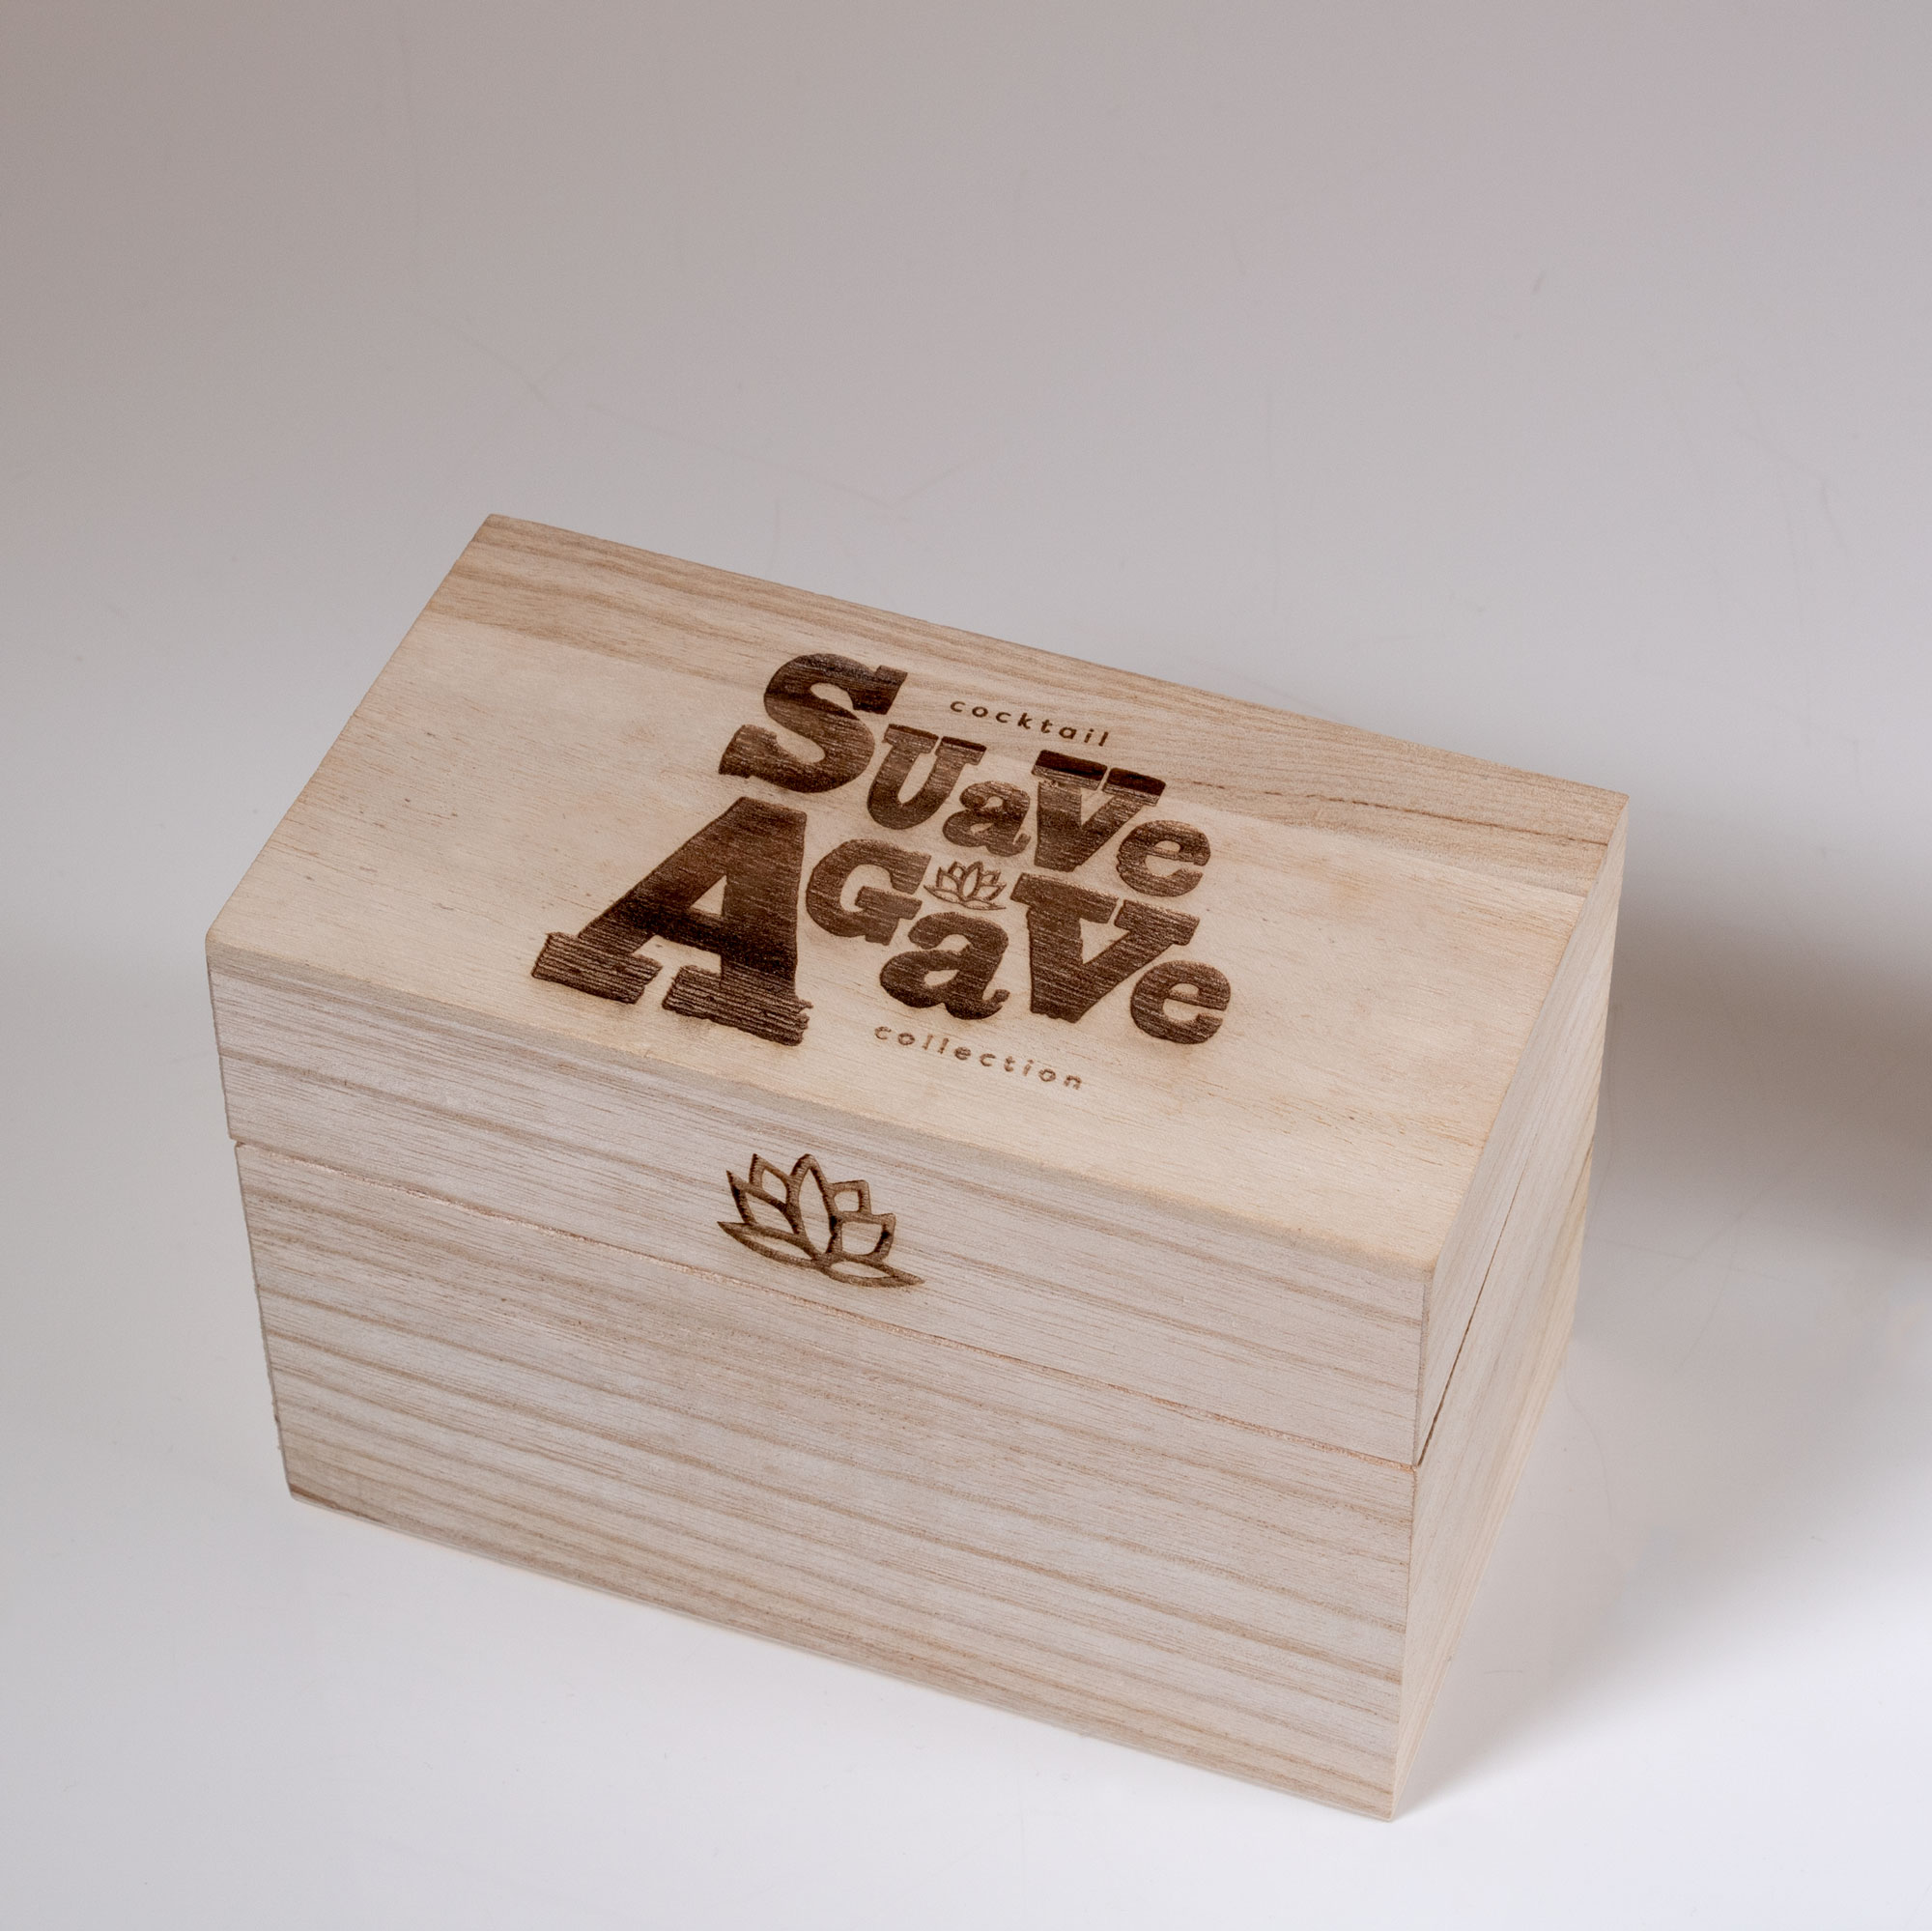 Suave Agave Tequila